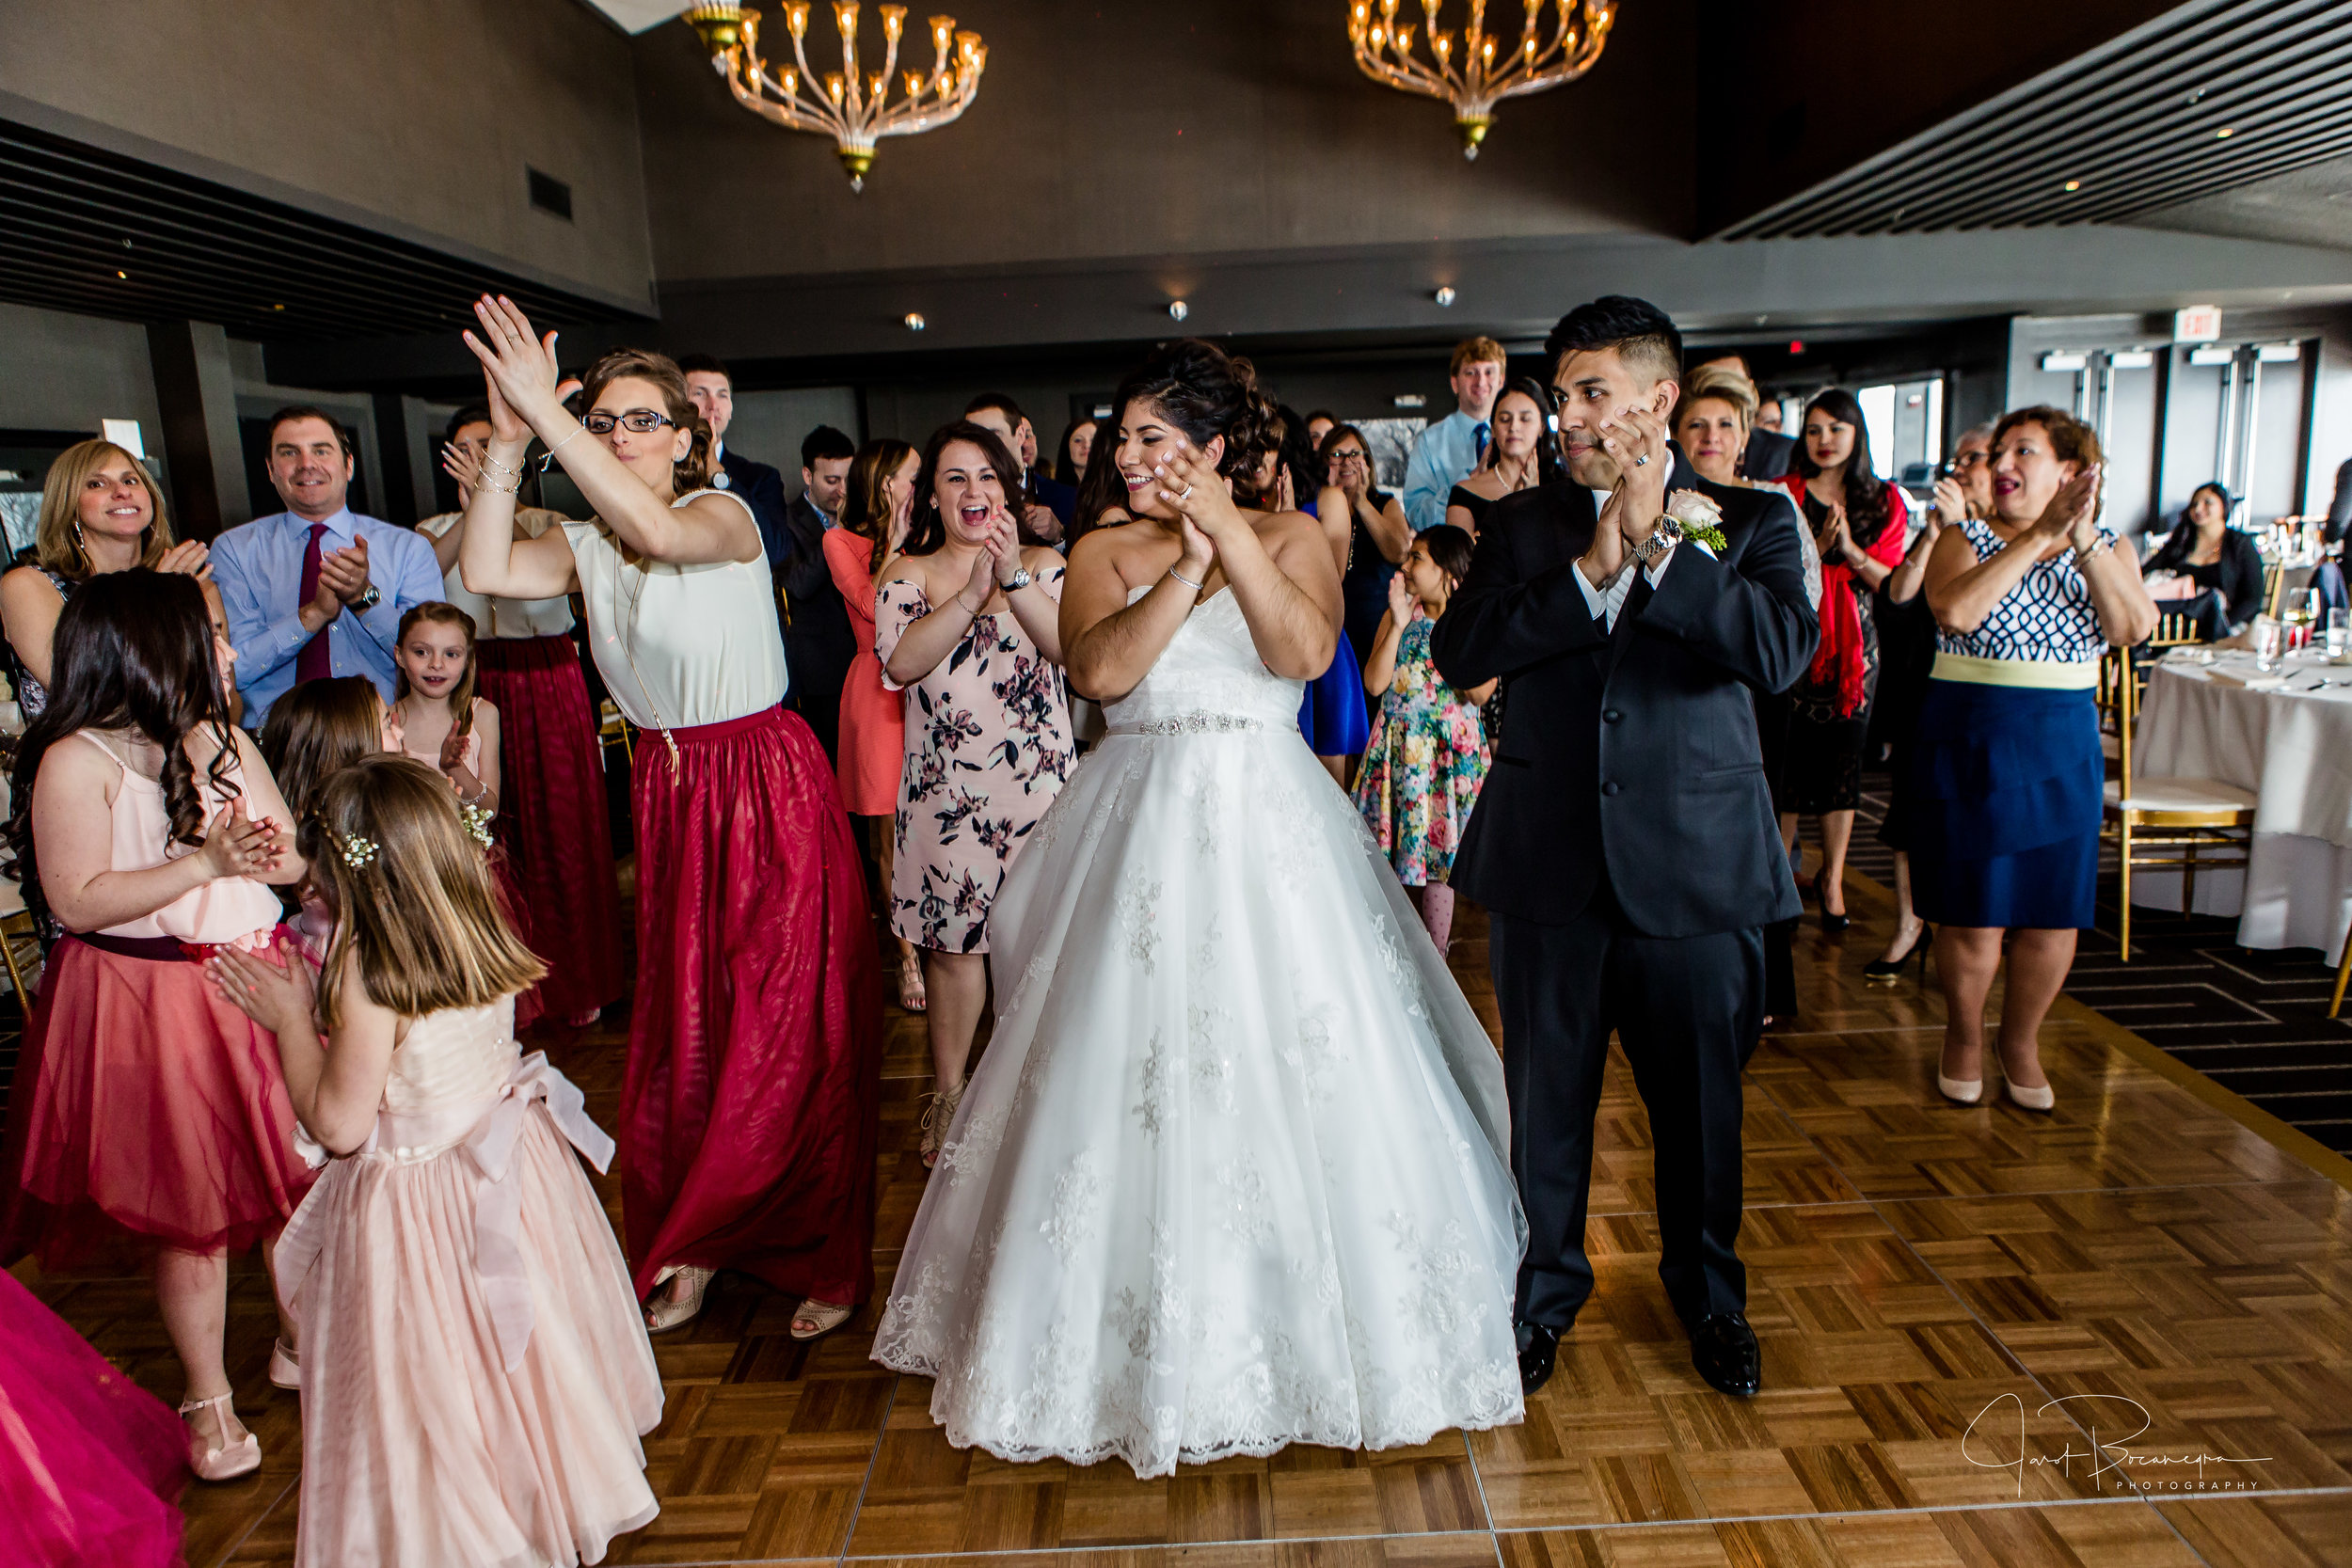 2017_04_15_Kimberlyn & Daniel Wedding -437.jpg